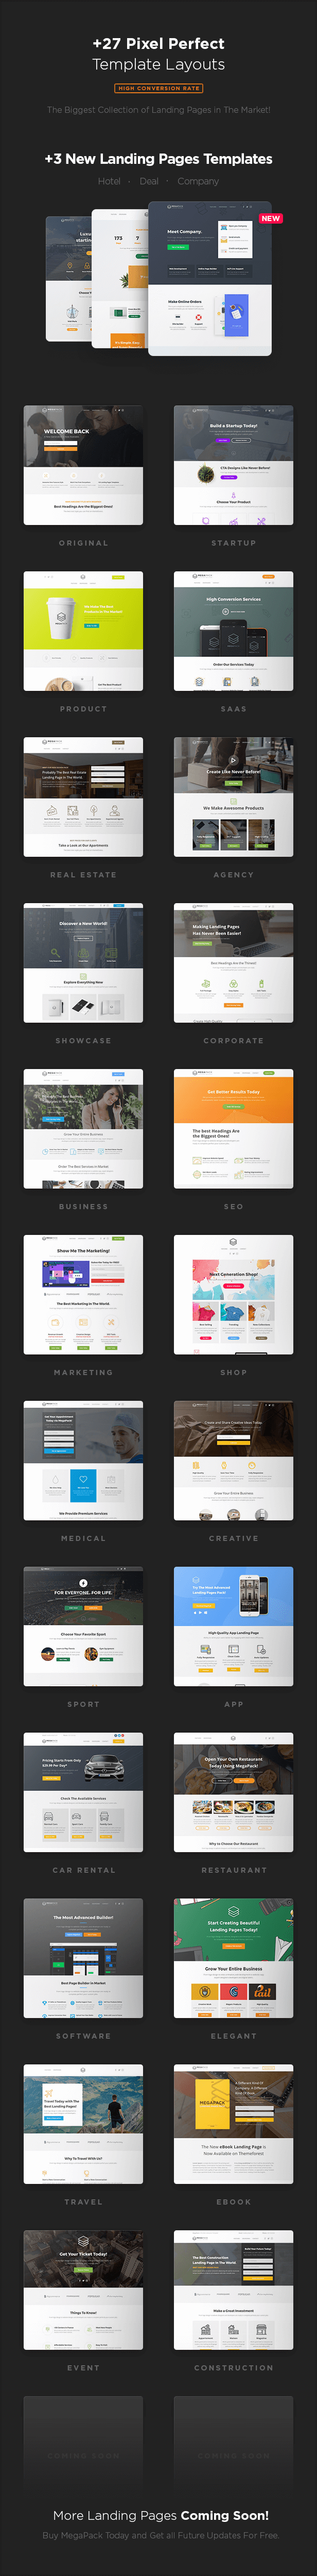 MEGAPACK – Marketing HTML Landing Pages Pack + PixFort Page Builder Access - 20